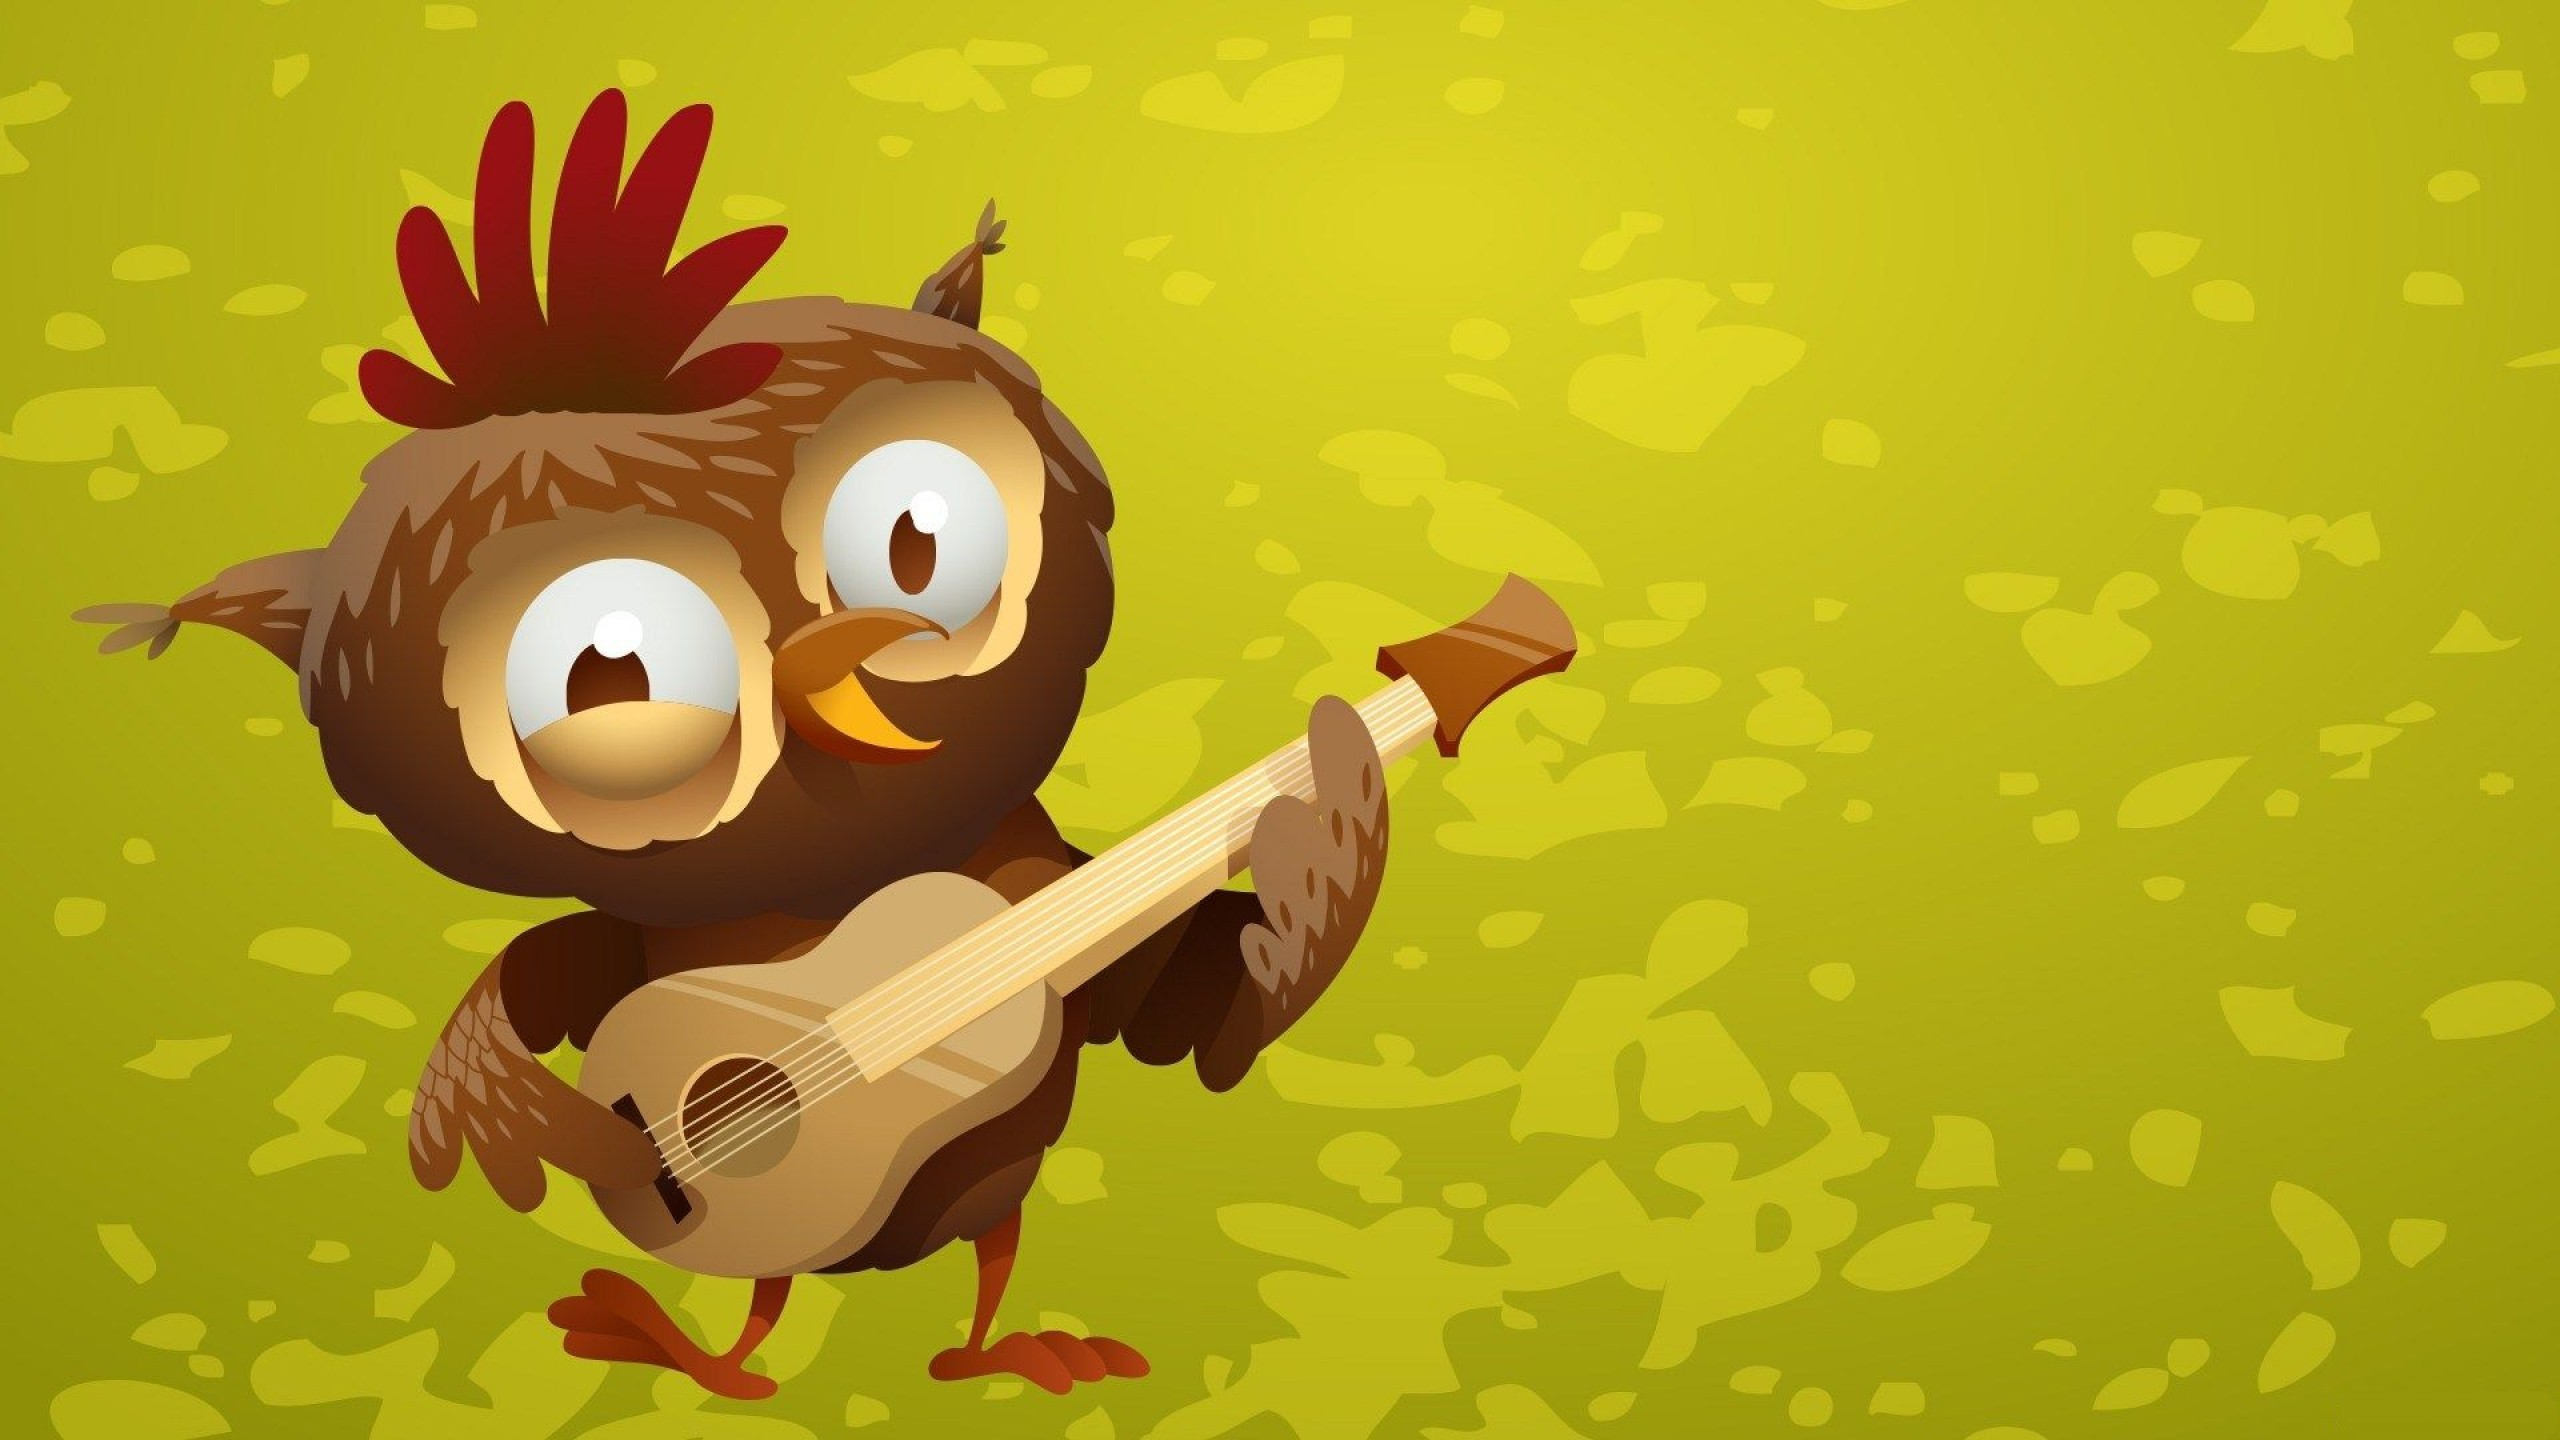 wallpaper.wiki-Funny-Owl-Cartoon-Playing-Guitar-Background-